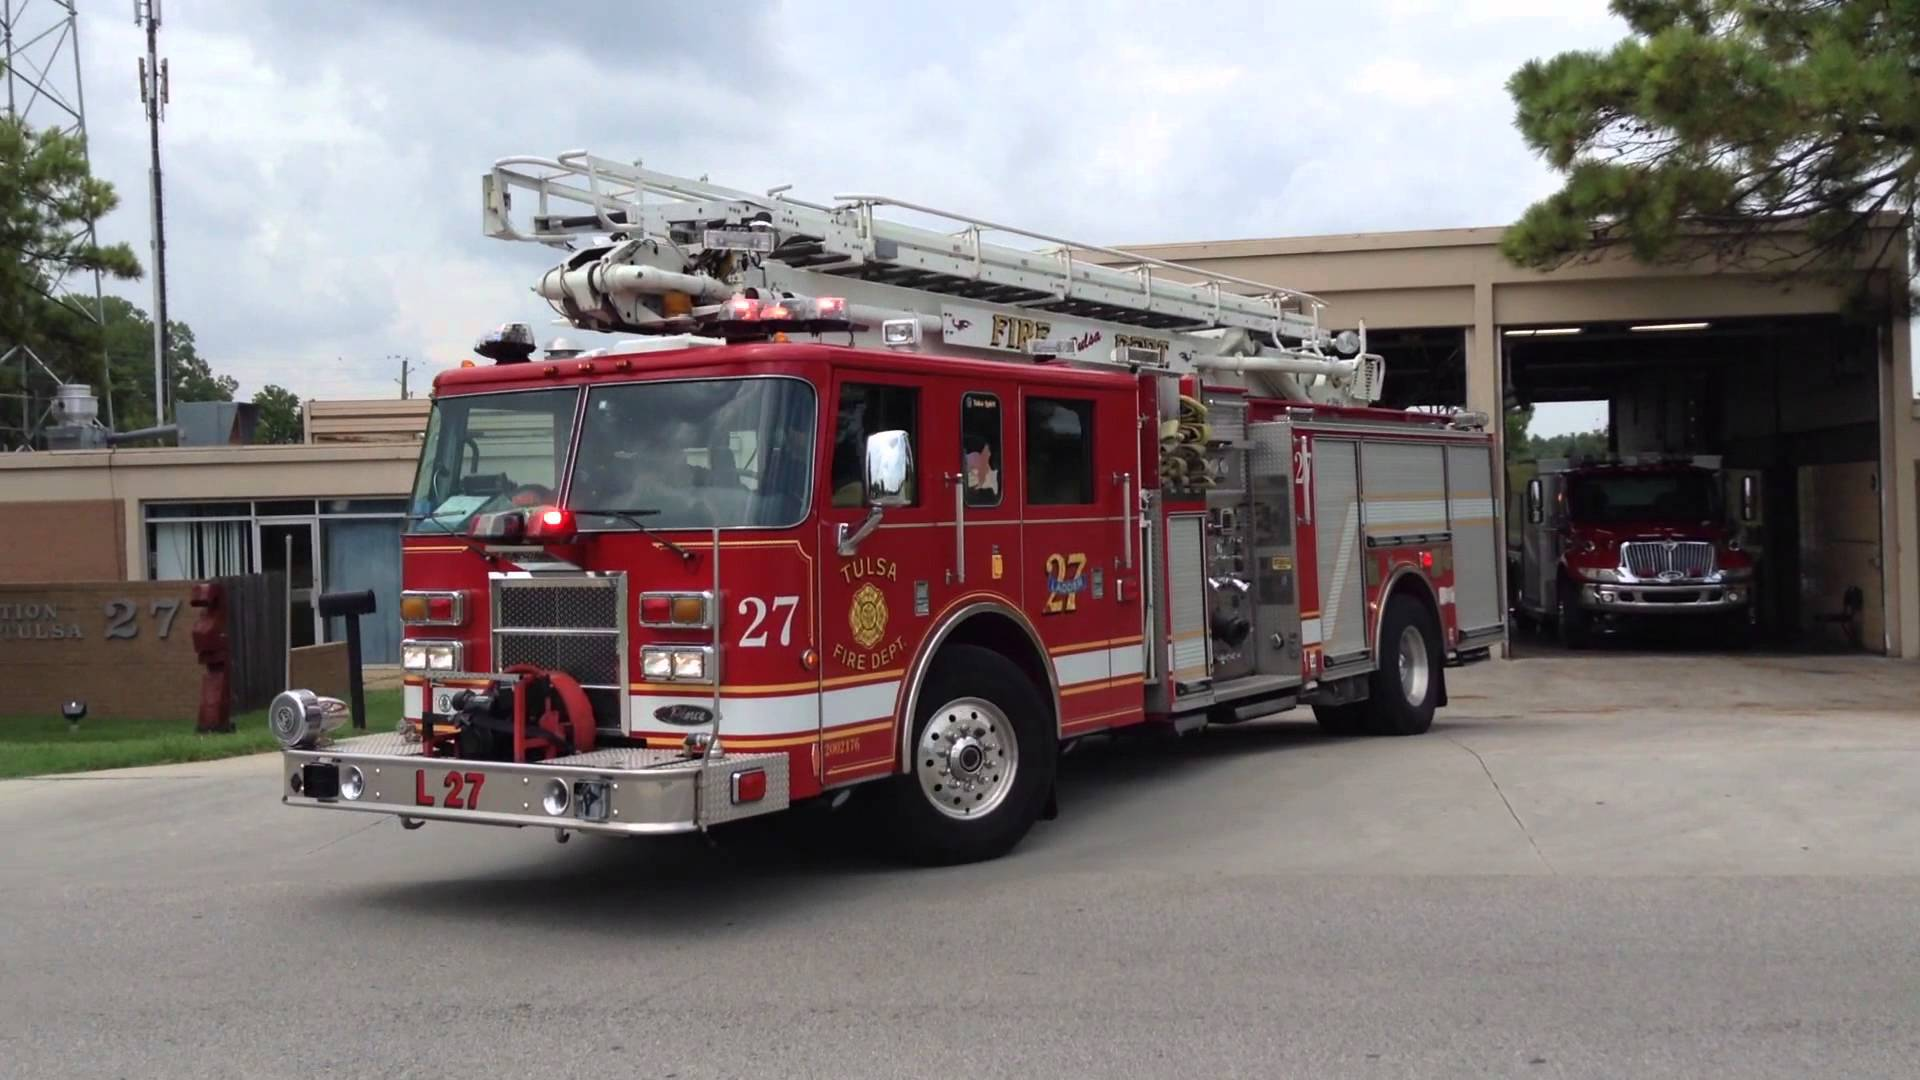 Tulsa Fire Department Removes Support For Law Enforcement On Trucks